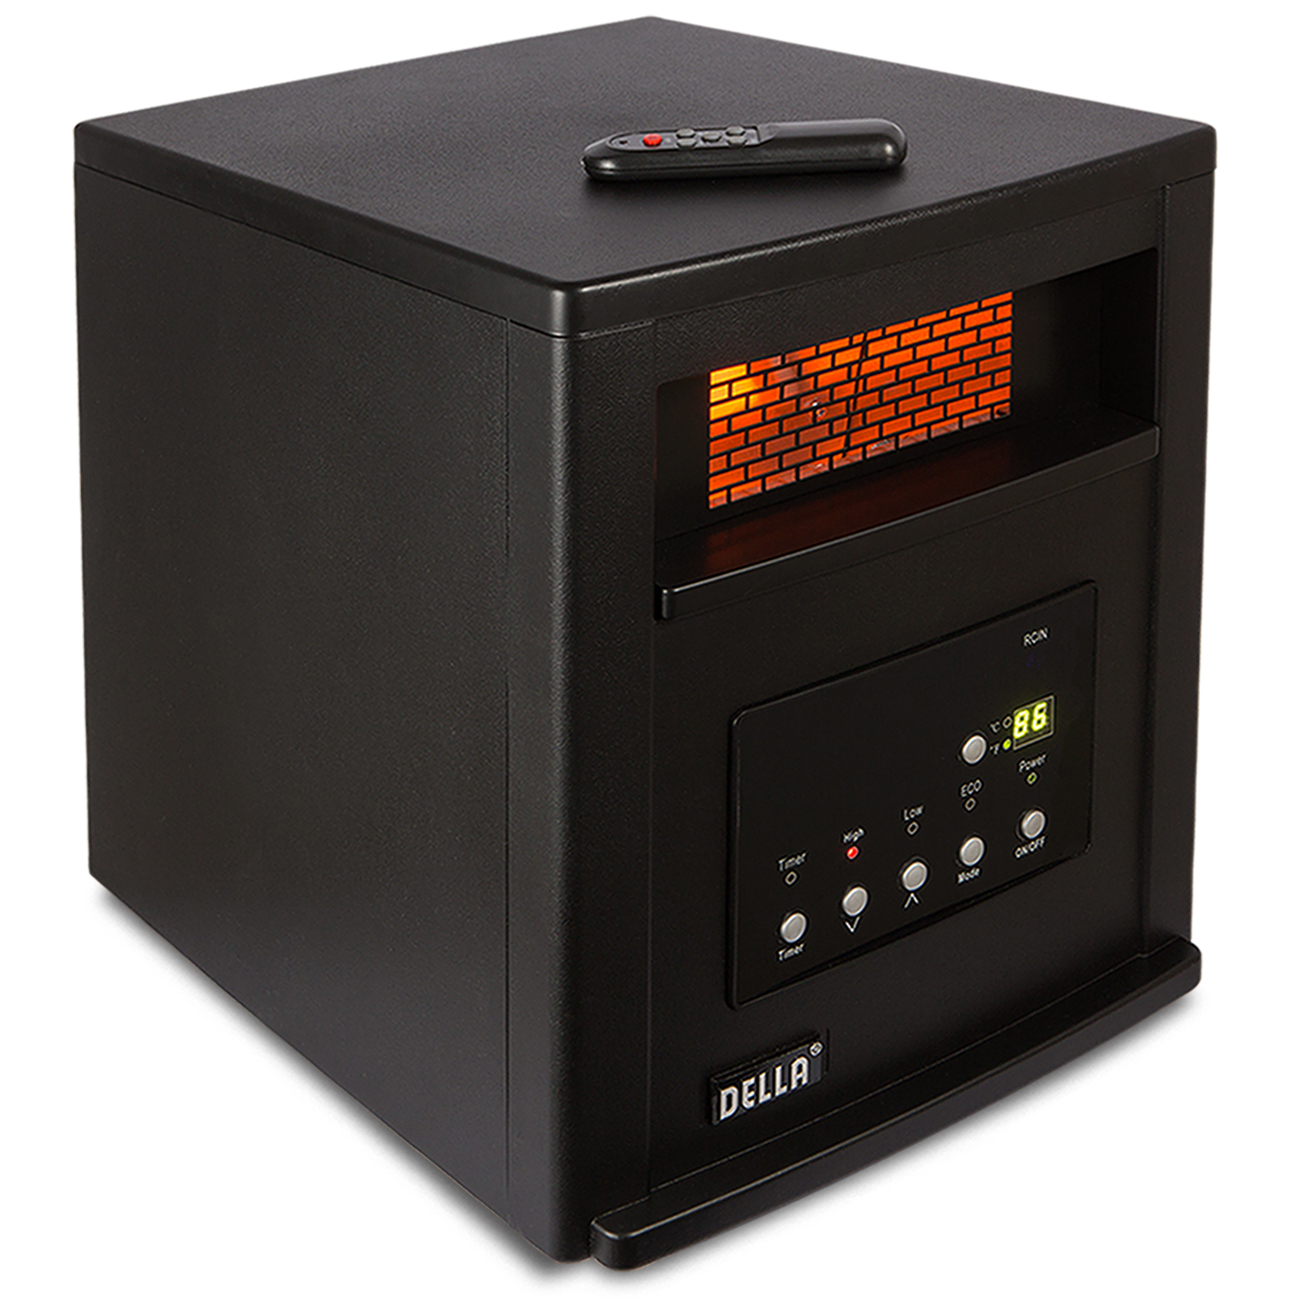 Infrared Quartz Portable Electric Space Heater With Remote